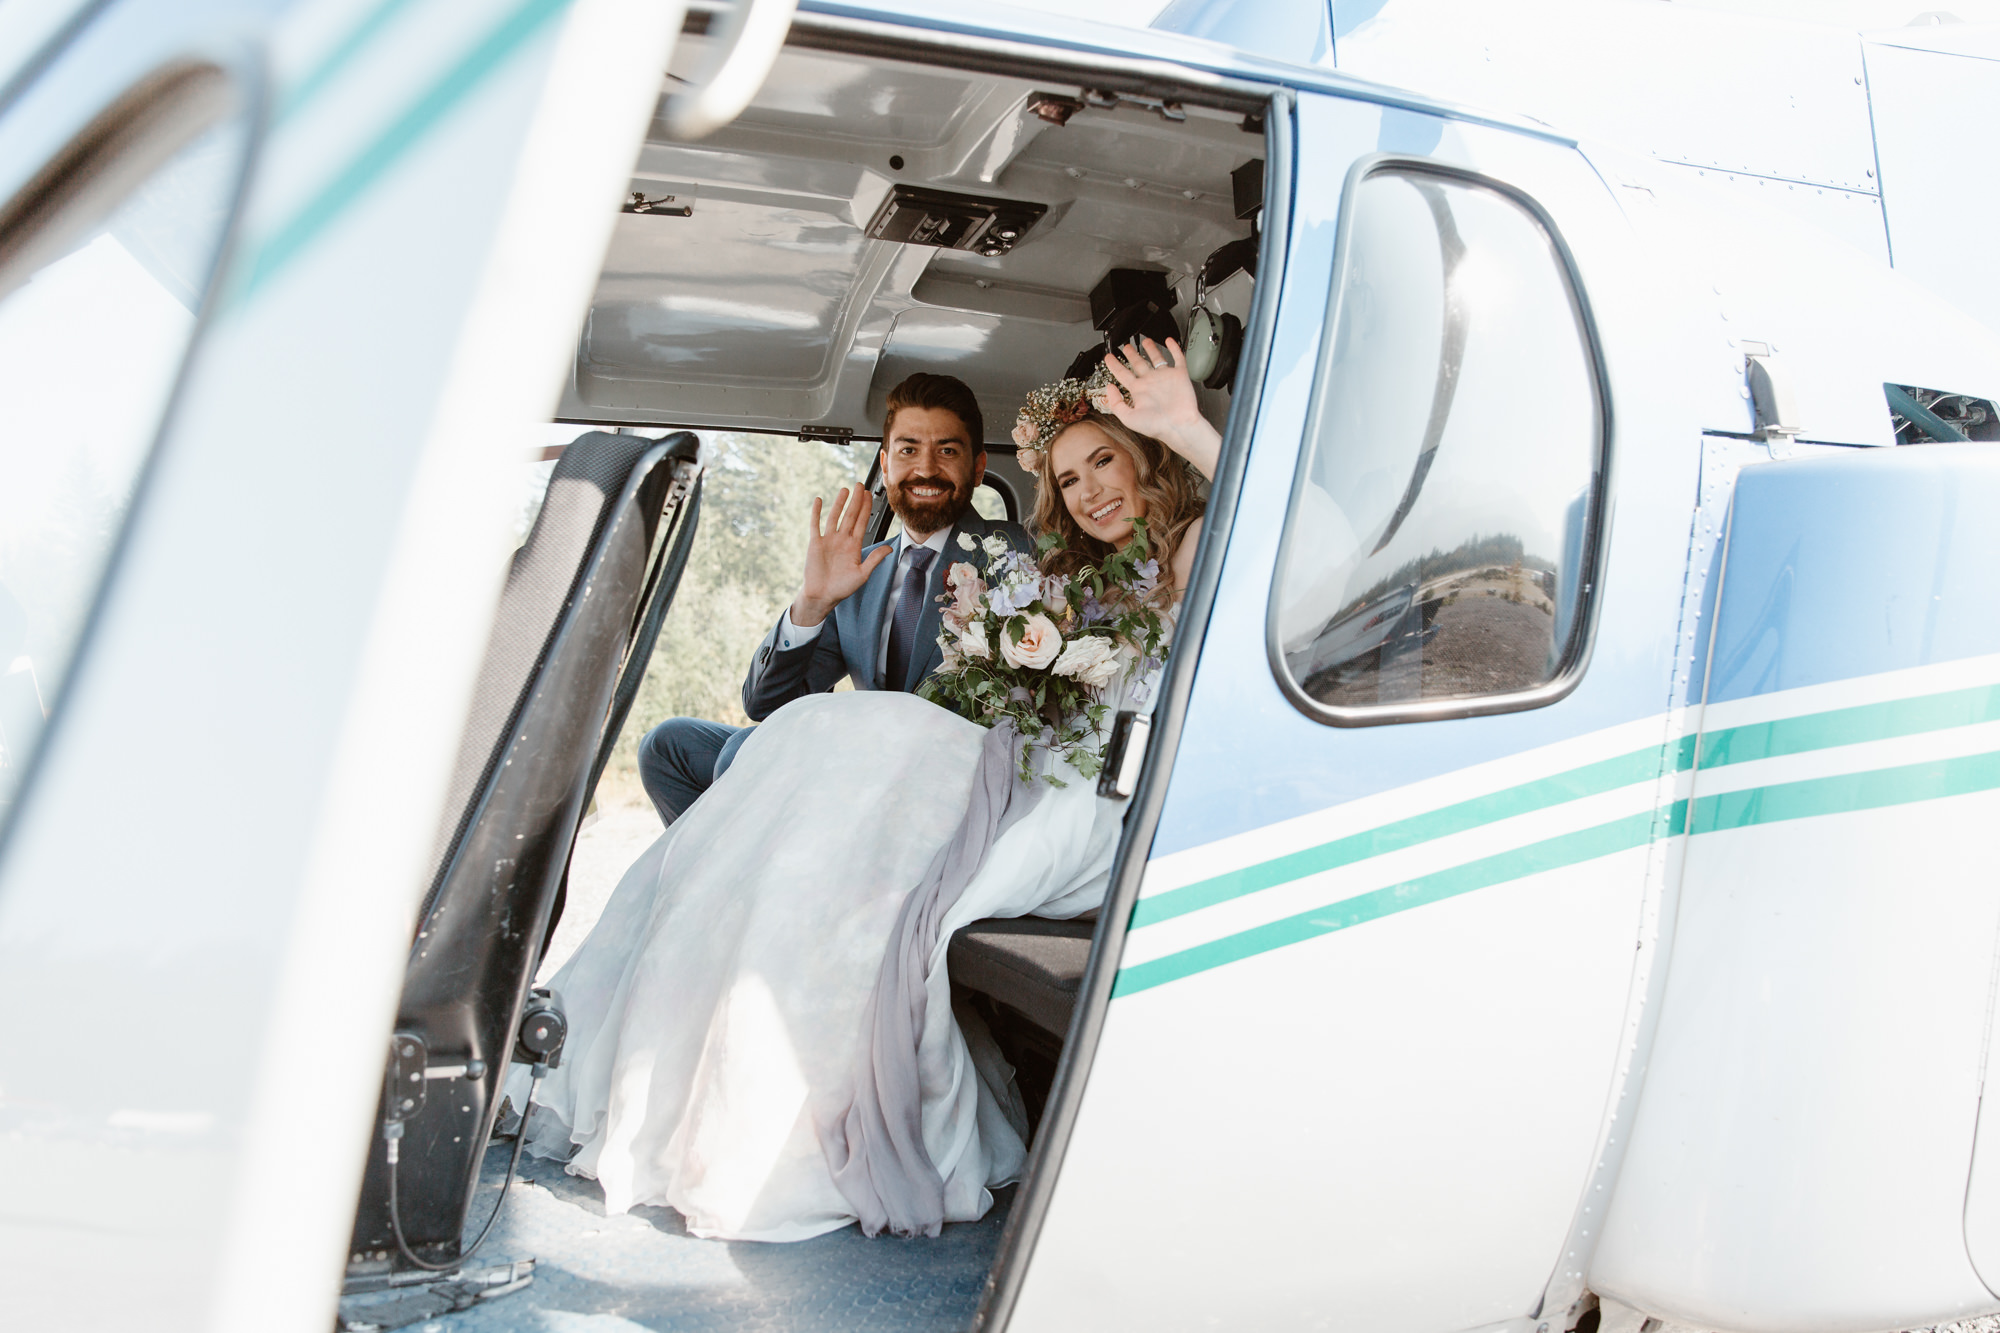 Bride and groom in the helicopter taking off for their photo session in the mountains